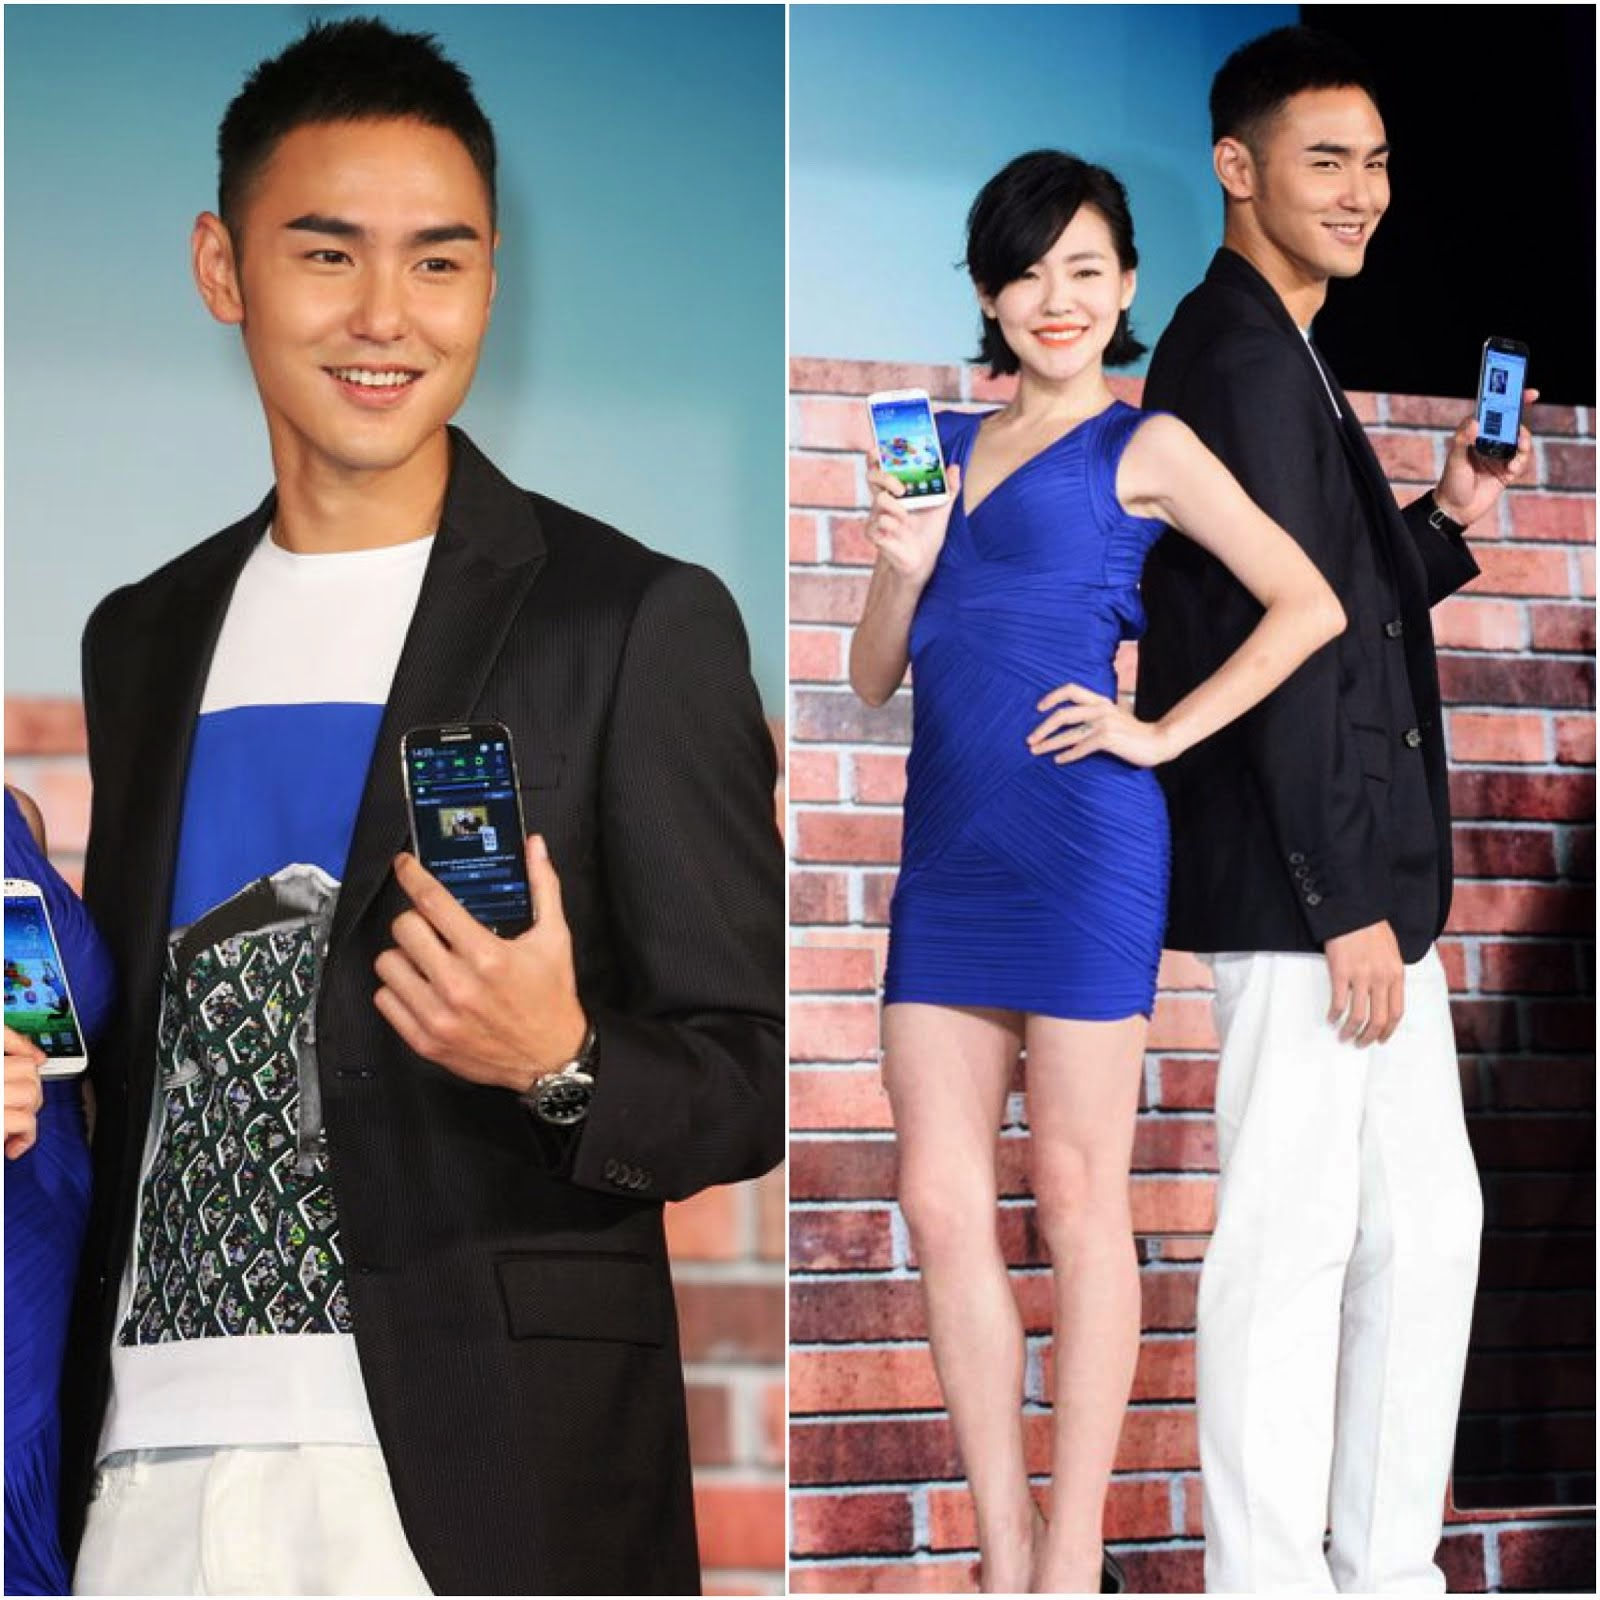 00O00 Menswear Blog: Ethan Ruan [] in Raf Simons - Samsung Galaxy Taiwan Promotions